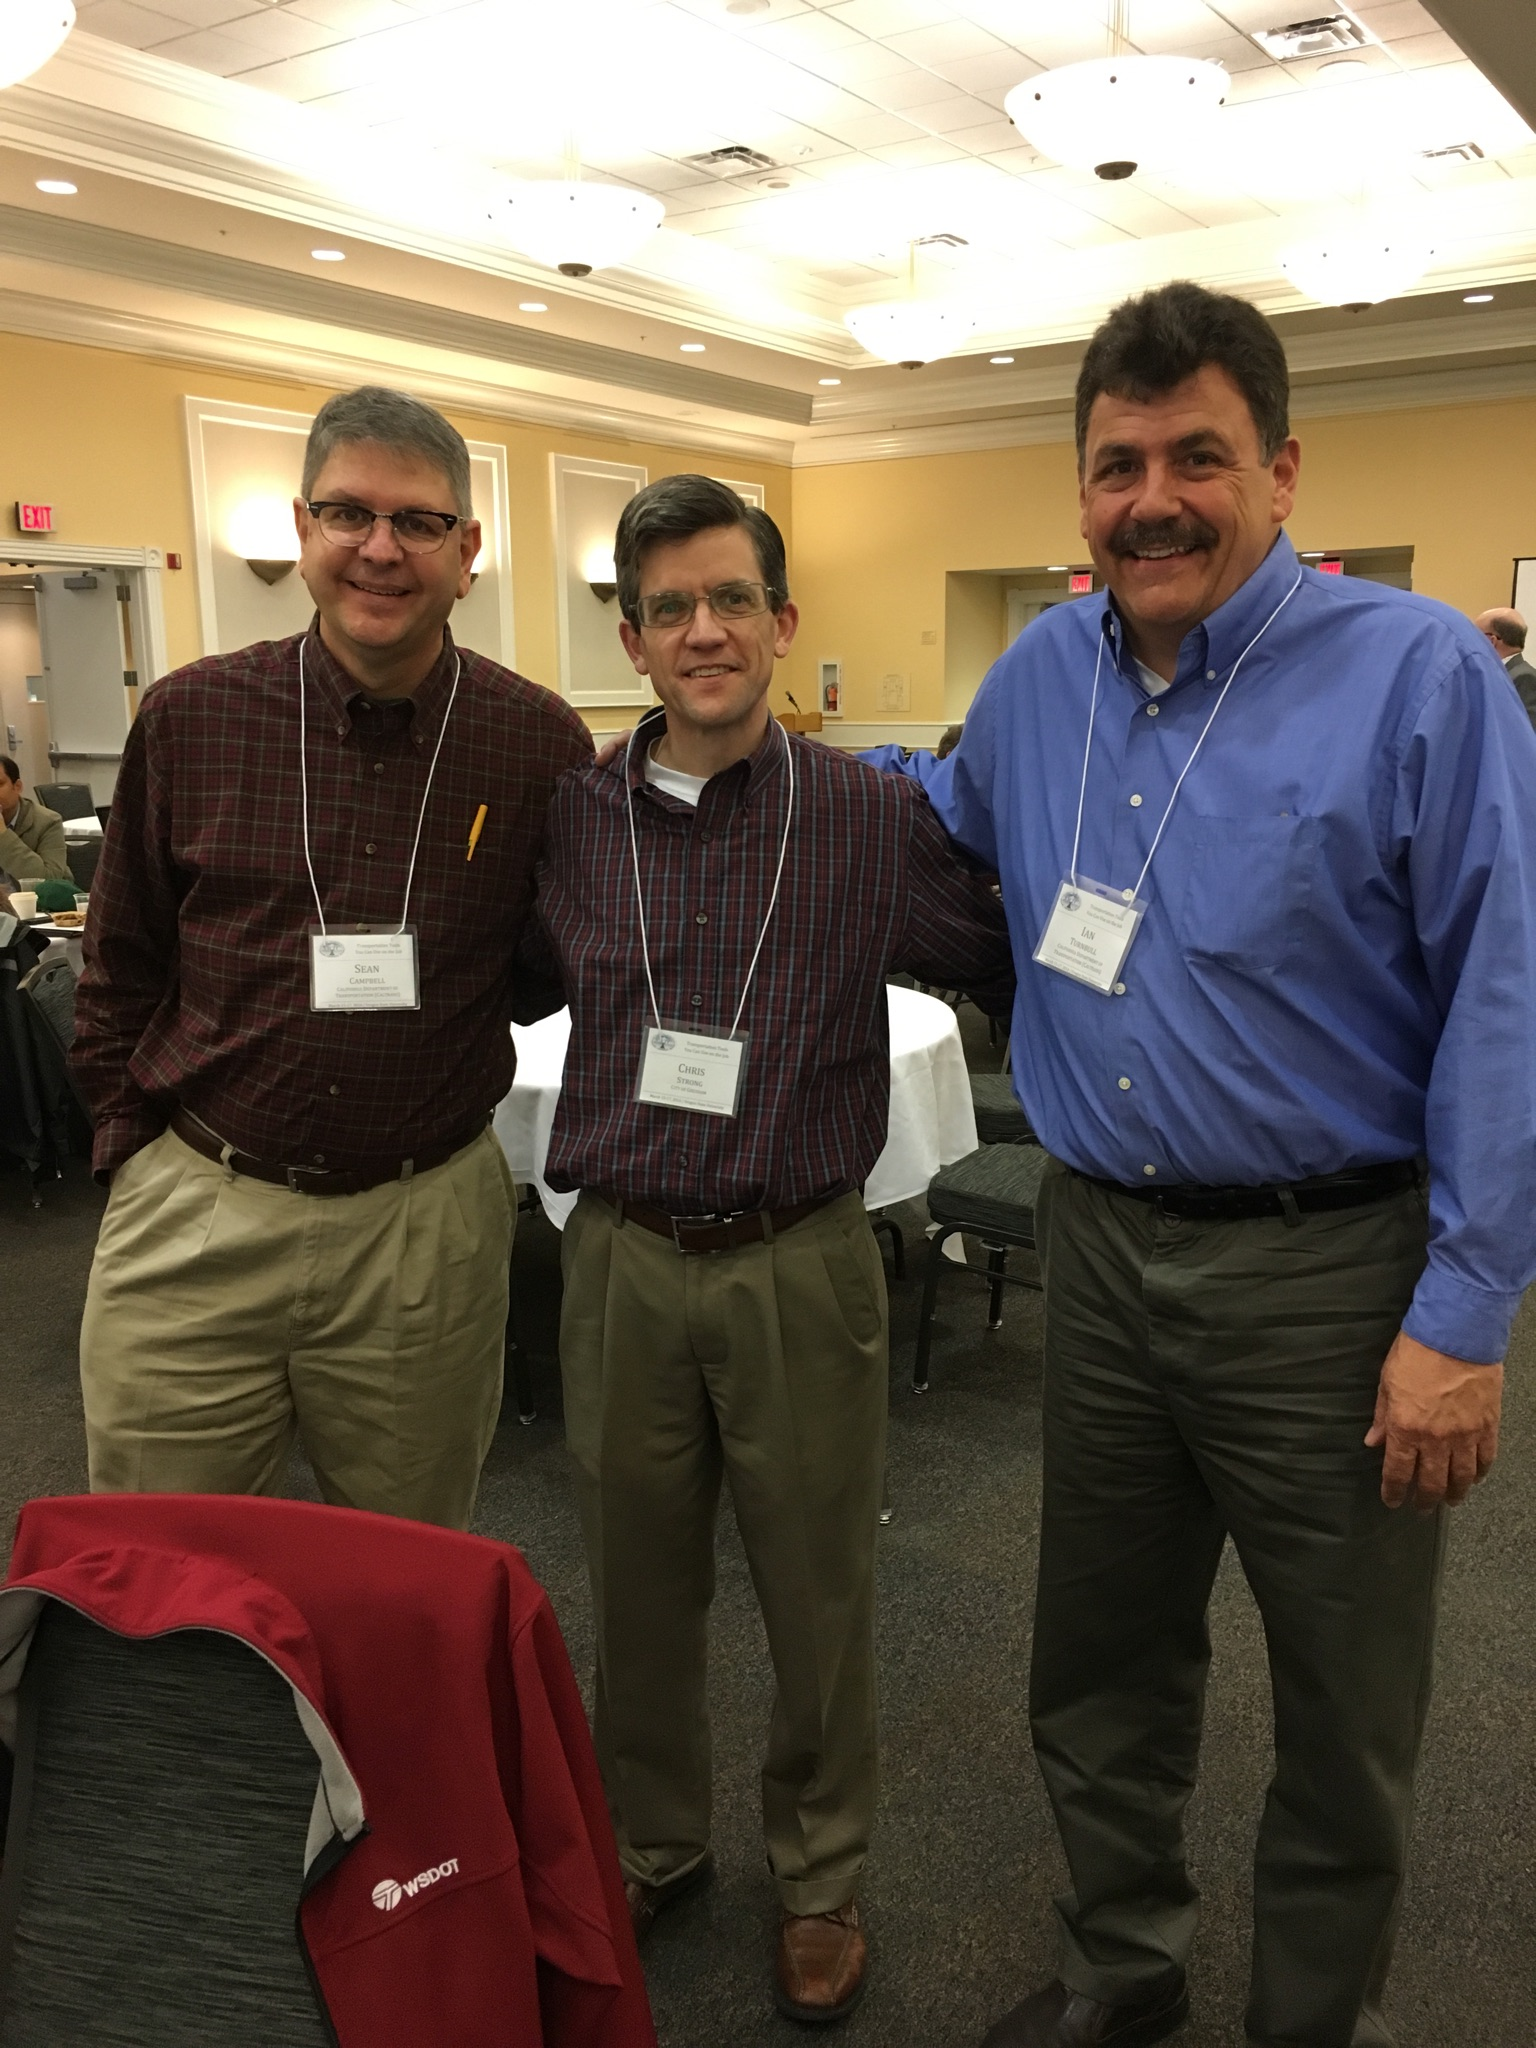 Sean Campbell, Chris Strong and Ian Turnbull at the Northwest Transportation Conference in Corvallis, Oregon, March 2016.